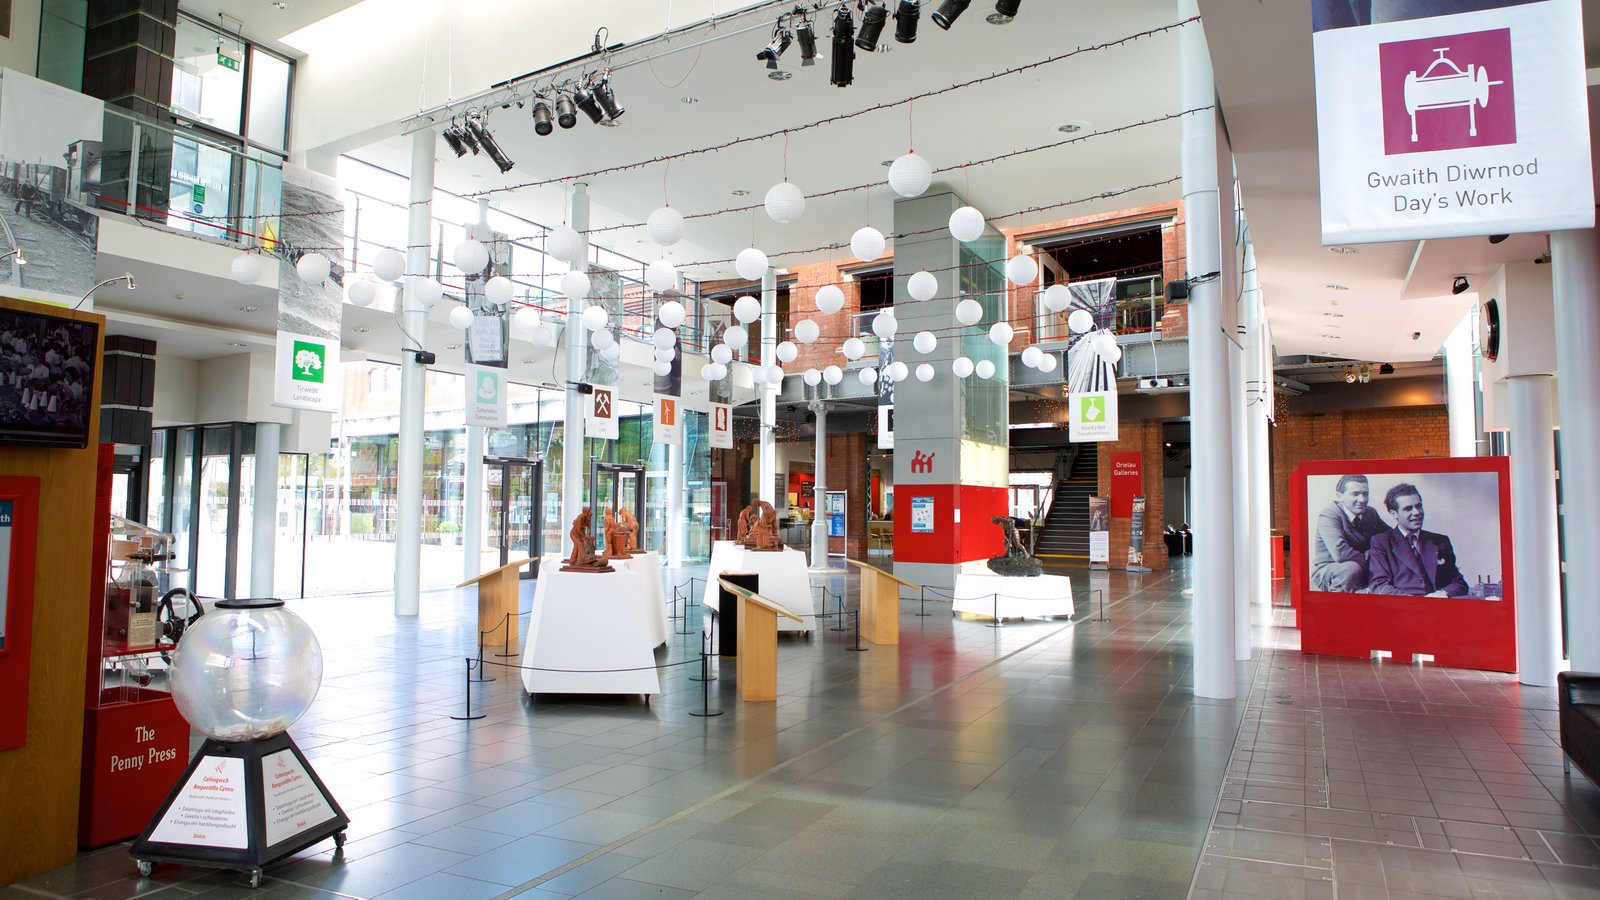 National Waterfront Museum which includes shopping and interior views